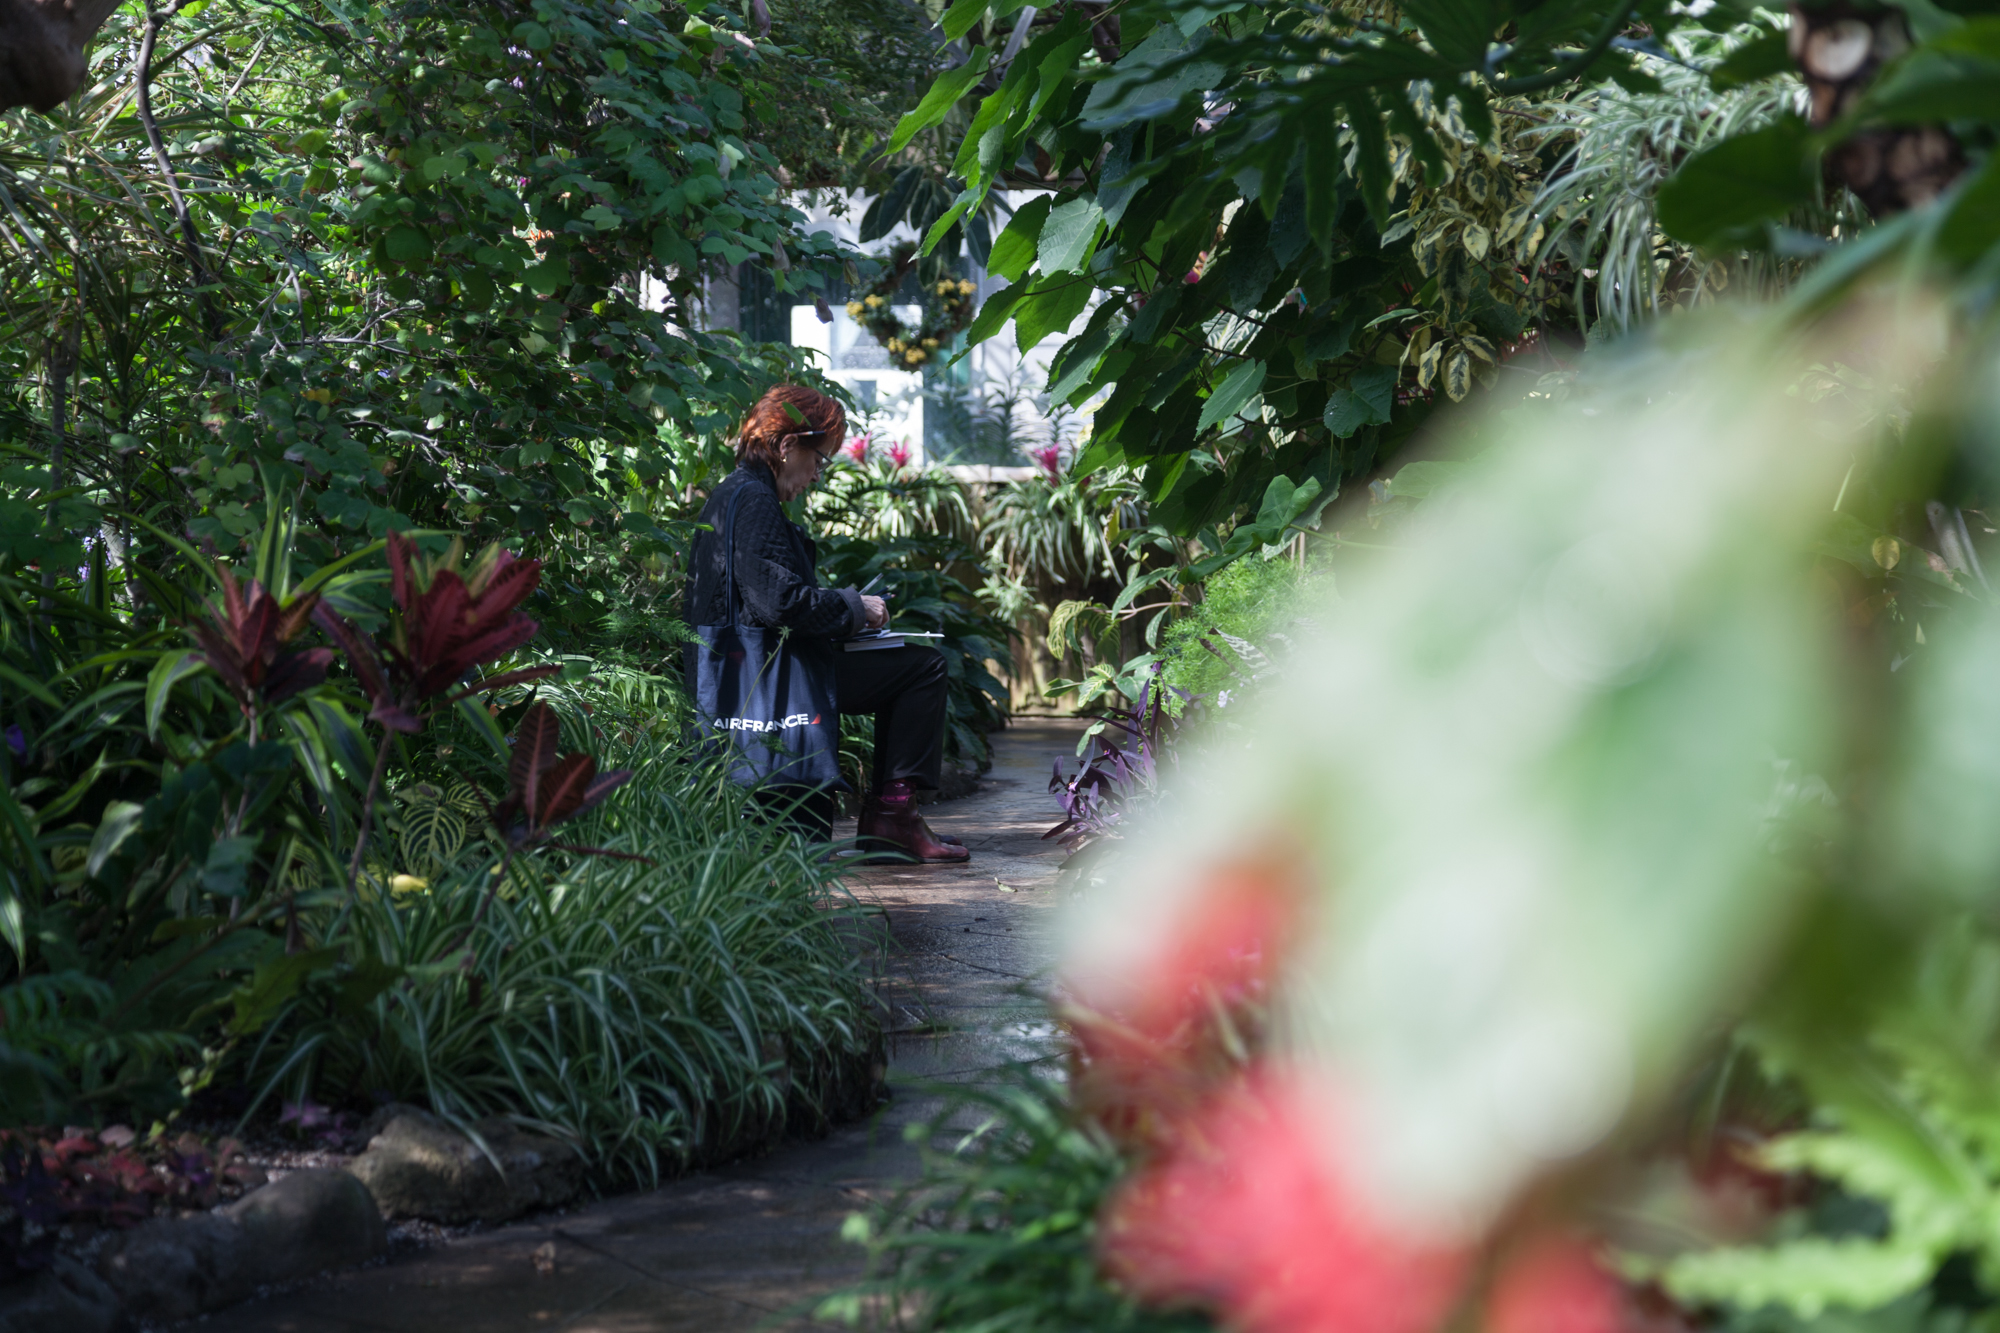 A woman draws flowers at the Allan Garden Conservatory.